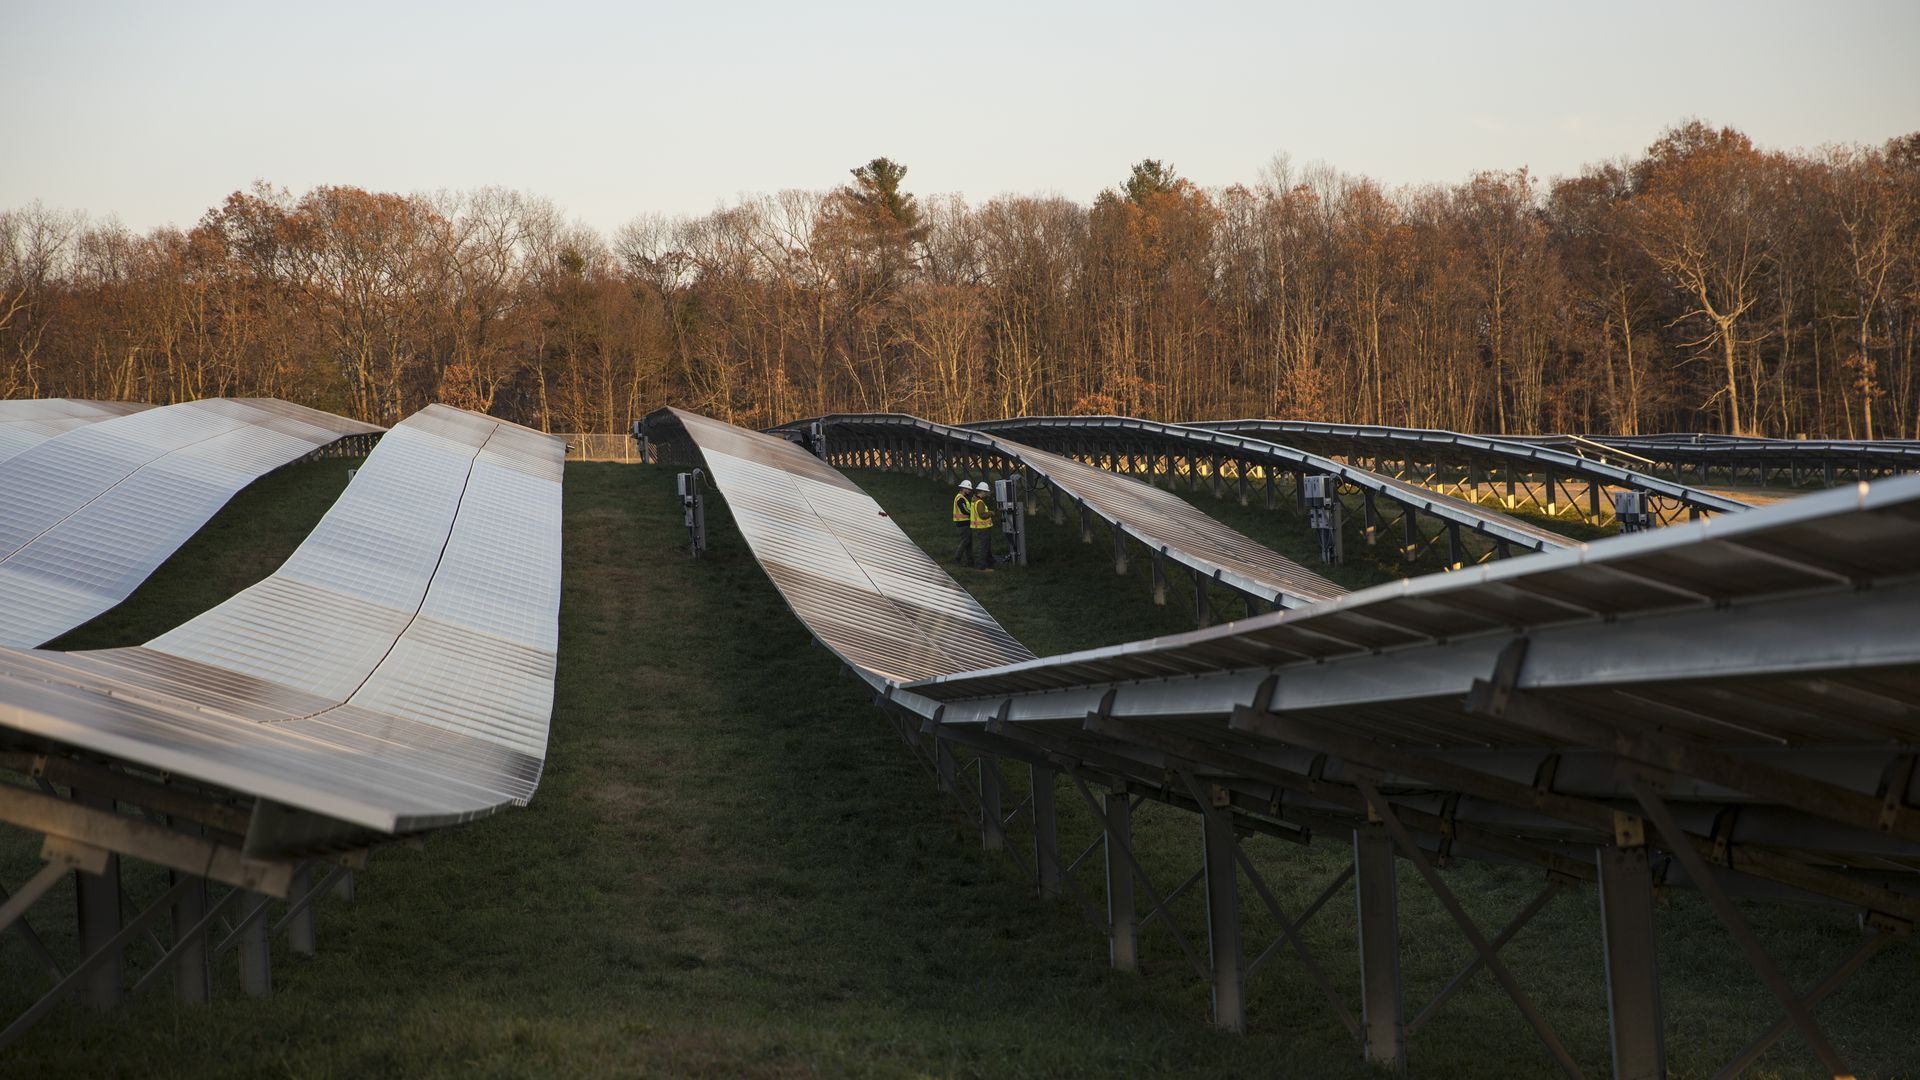 solar panels in field in front of forest